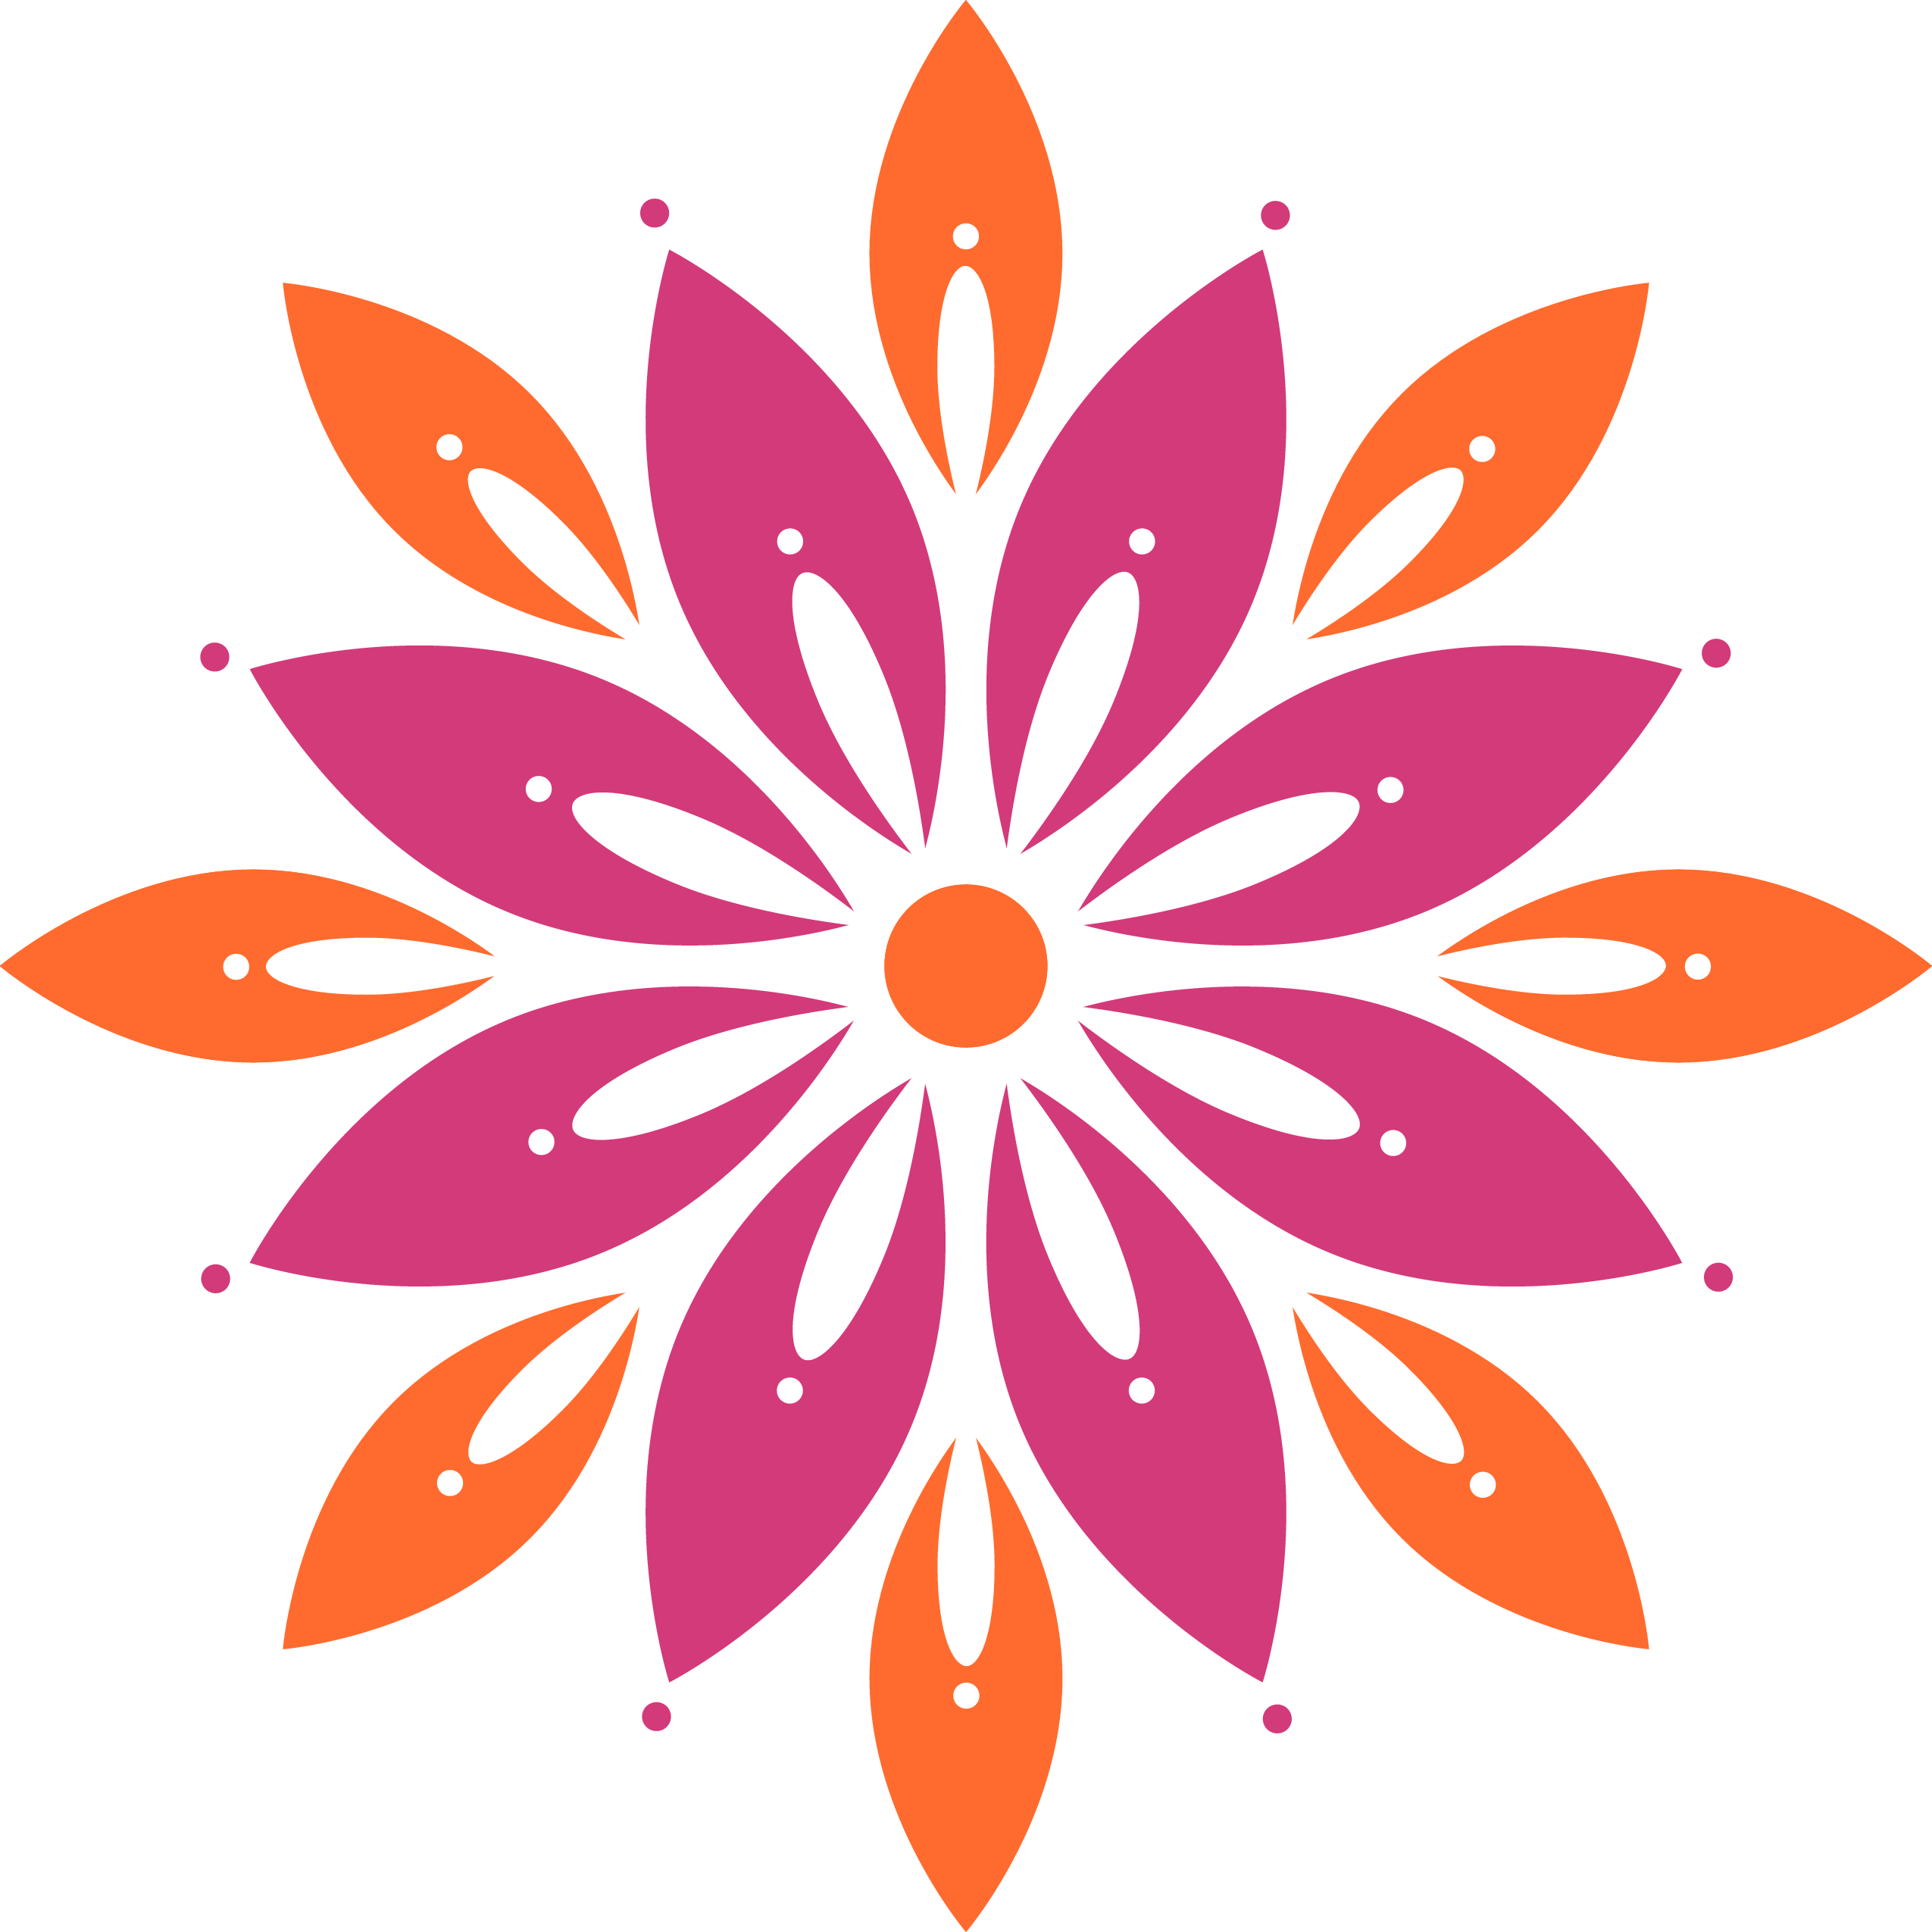 Orange and purple flower clipart png transparent download Party Elves png transparent download